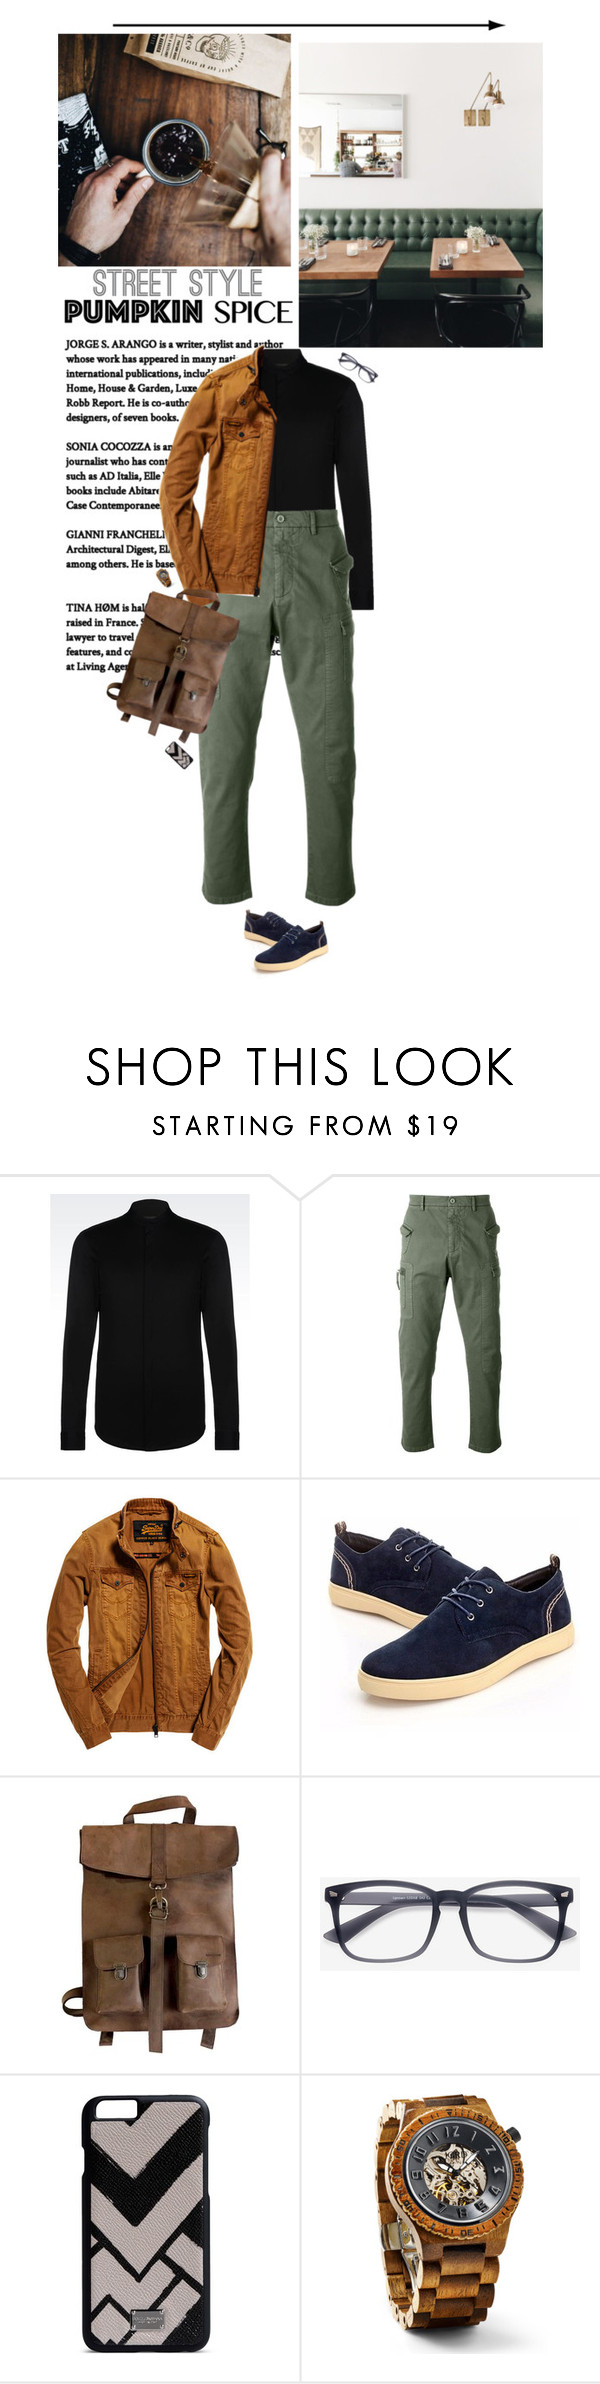 """""""He"""" by miss-milika ❤ liked on Polyvore featuring Emporio Armani, N°21, Superdry, Kjøre Project, Dolce&Gabbana, men's fashion and menswear"""